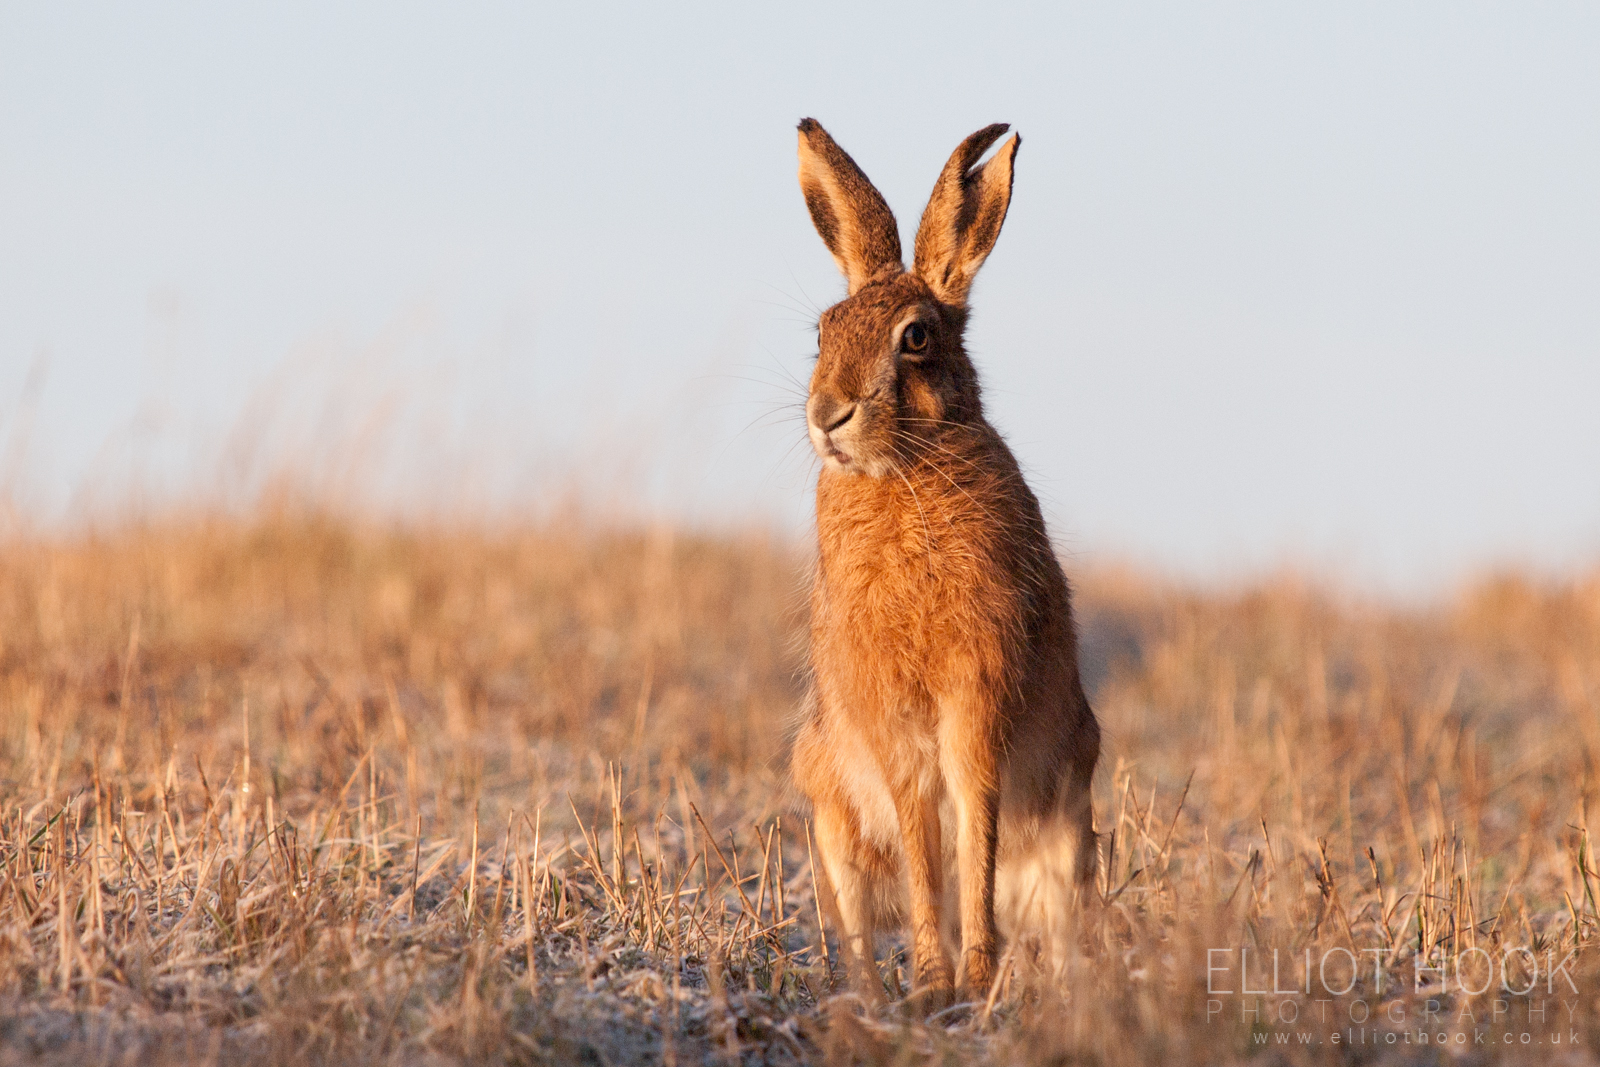 Brown Eye Close Up Brown Hare - Elliot Ho...